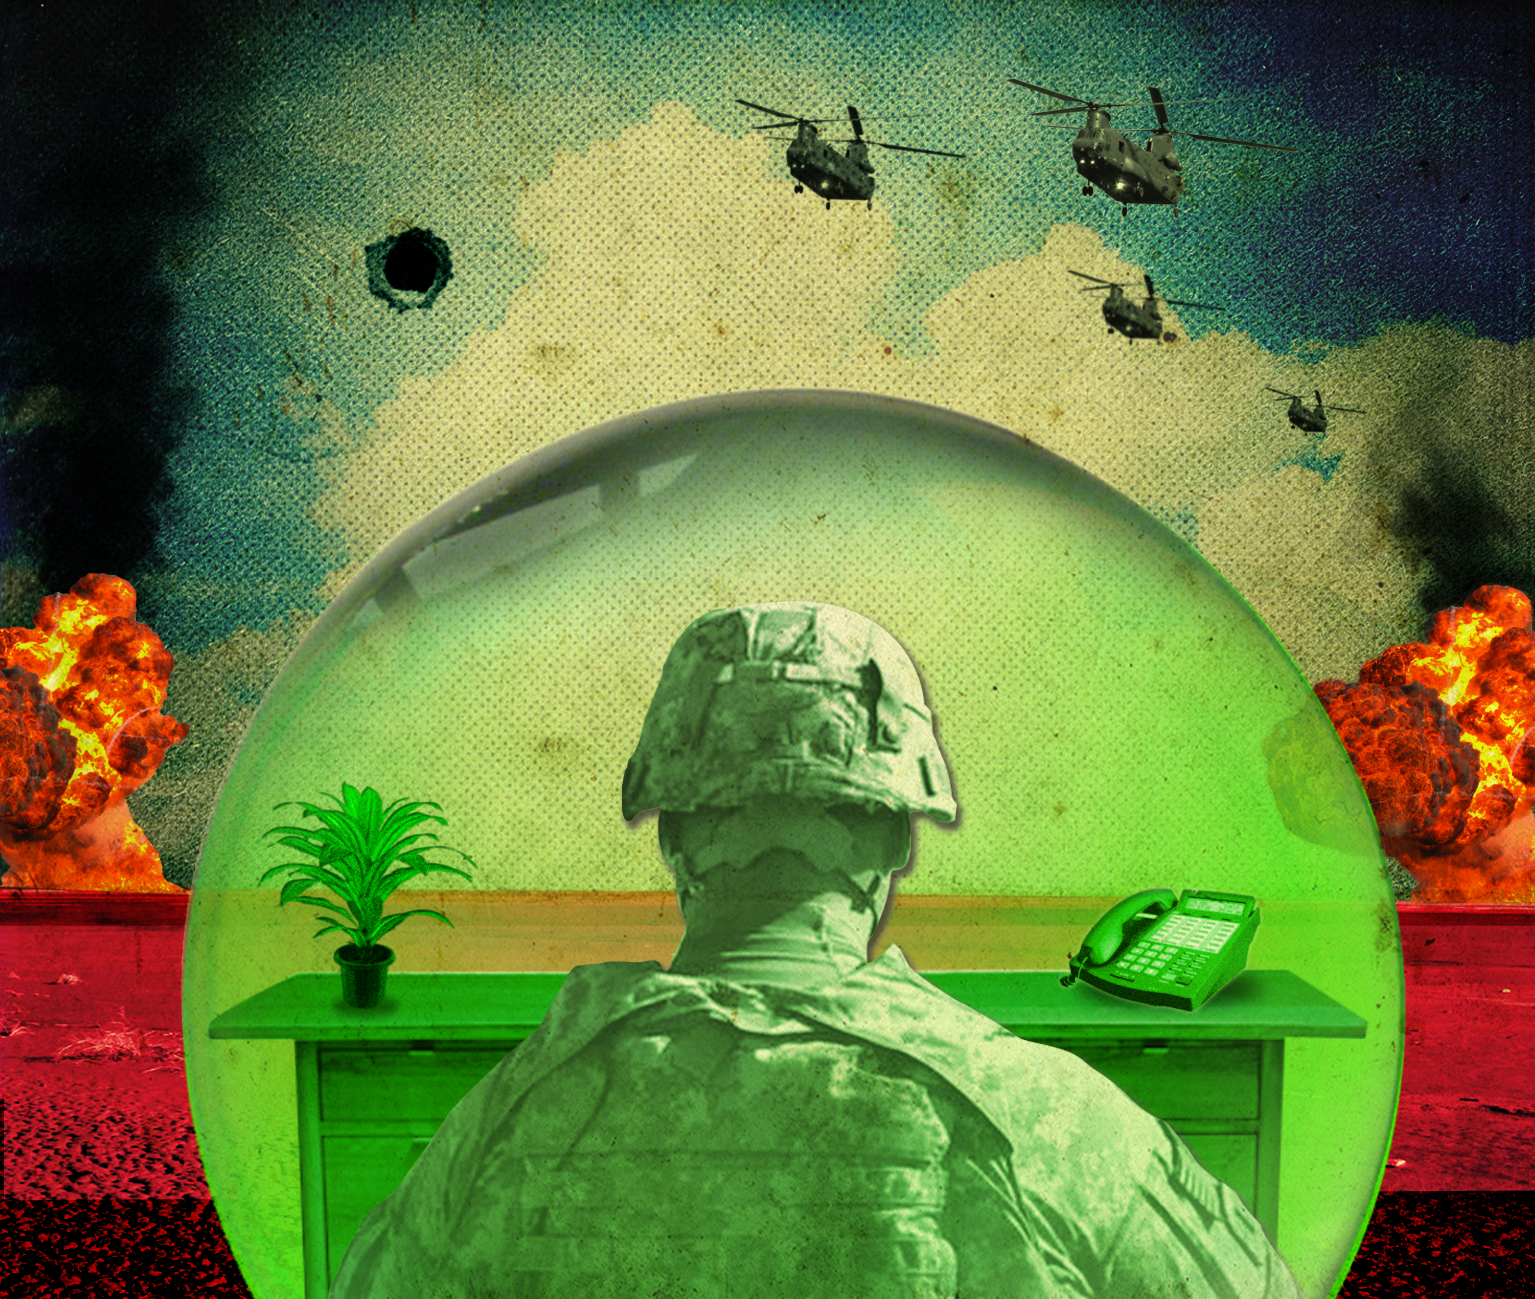 David Abrams' Fobbit: A squirm-inducing insider's view of the Iraq invasion